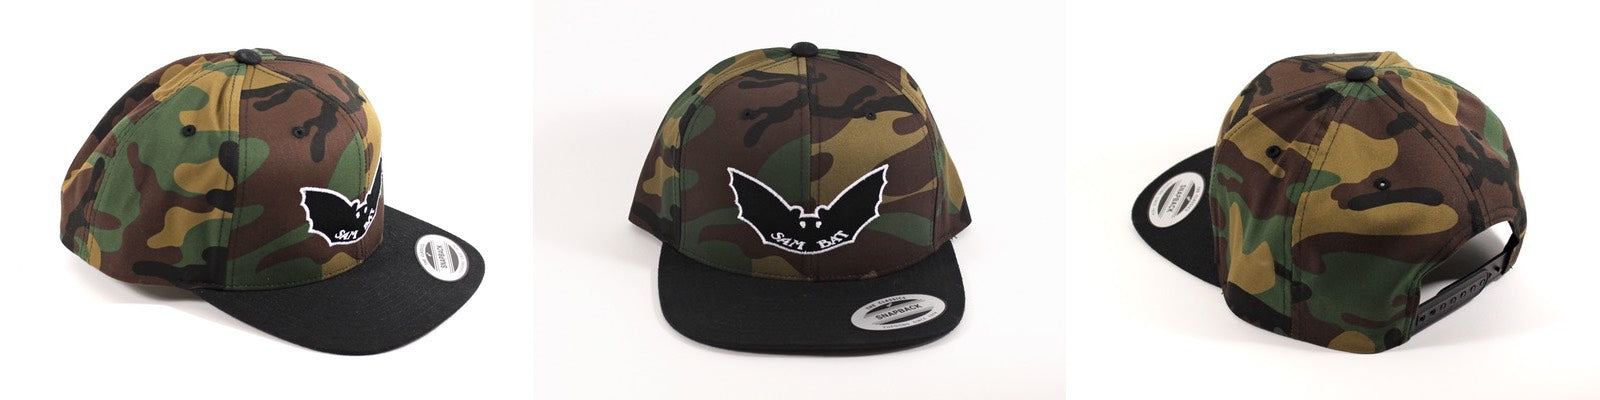 Sam Bat Camo Snap Back